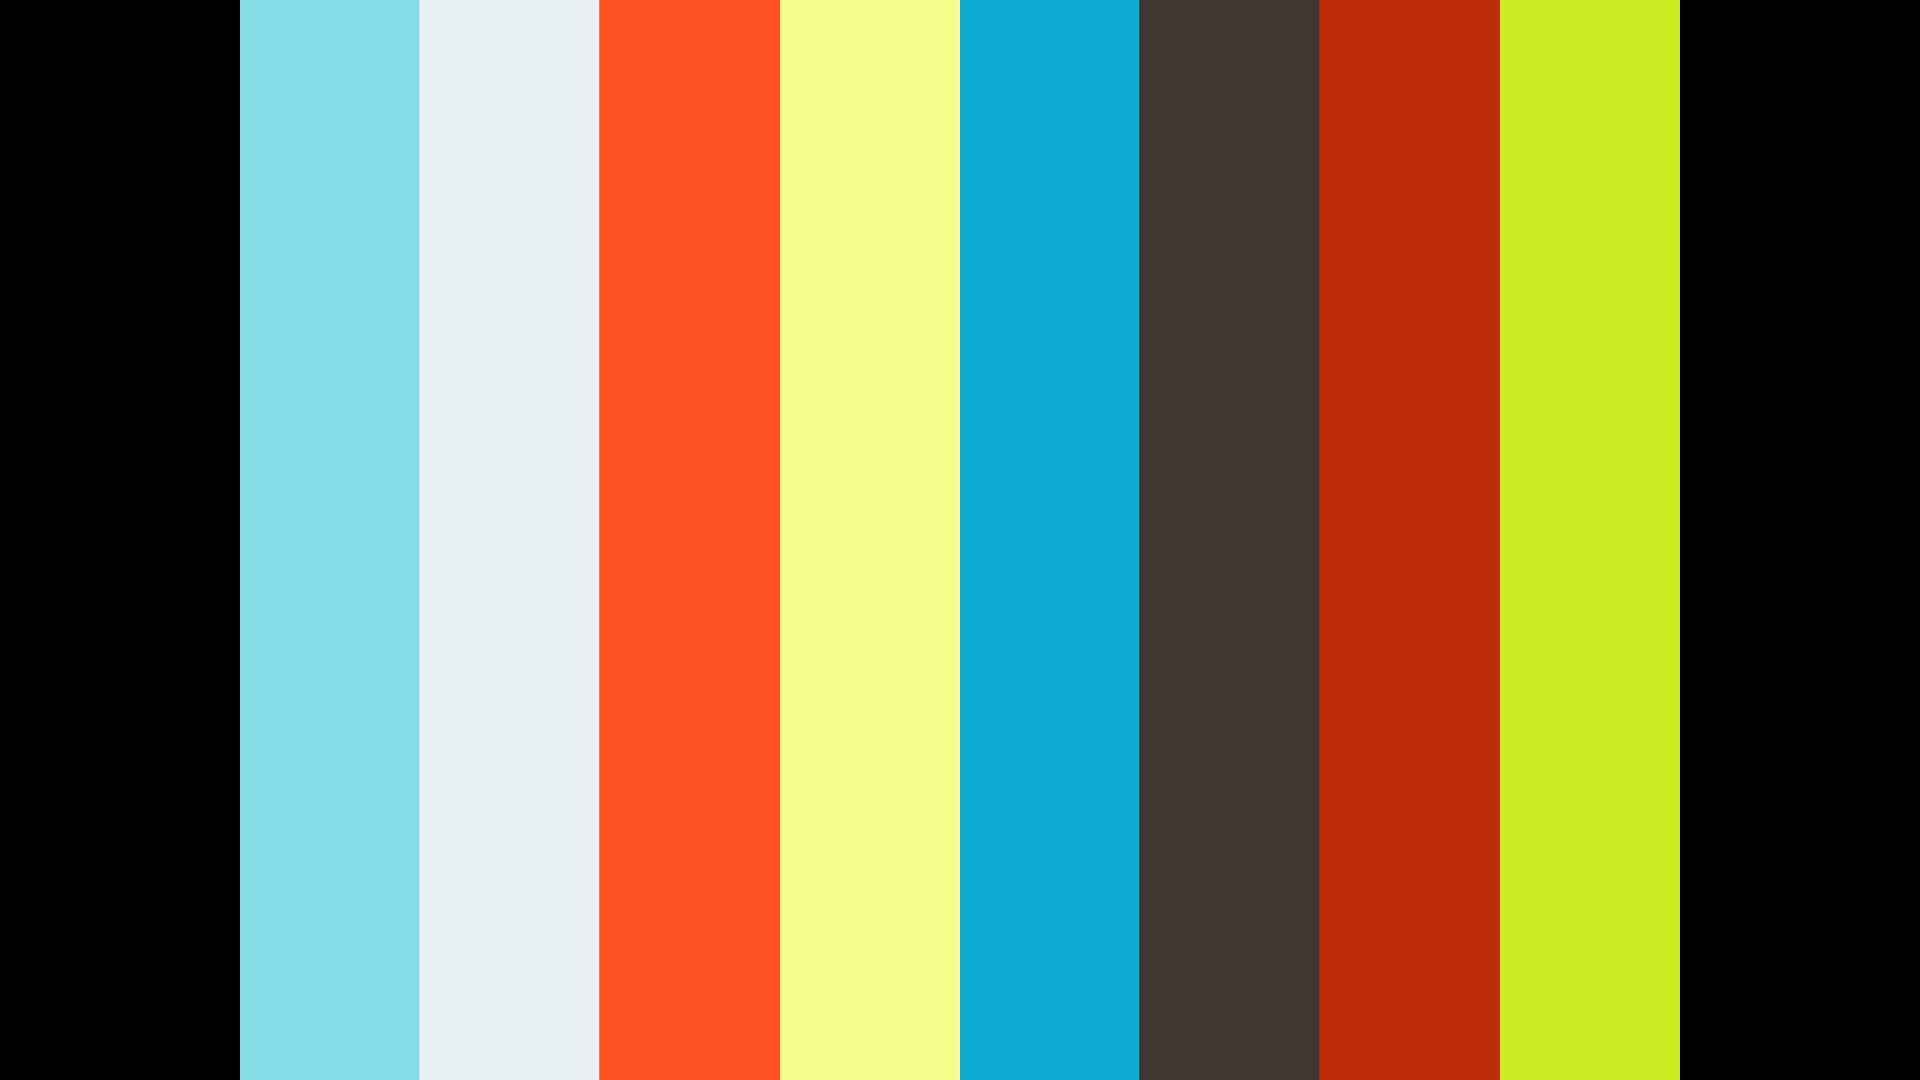 Native Is for Telling Stories